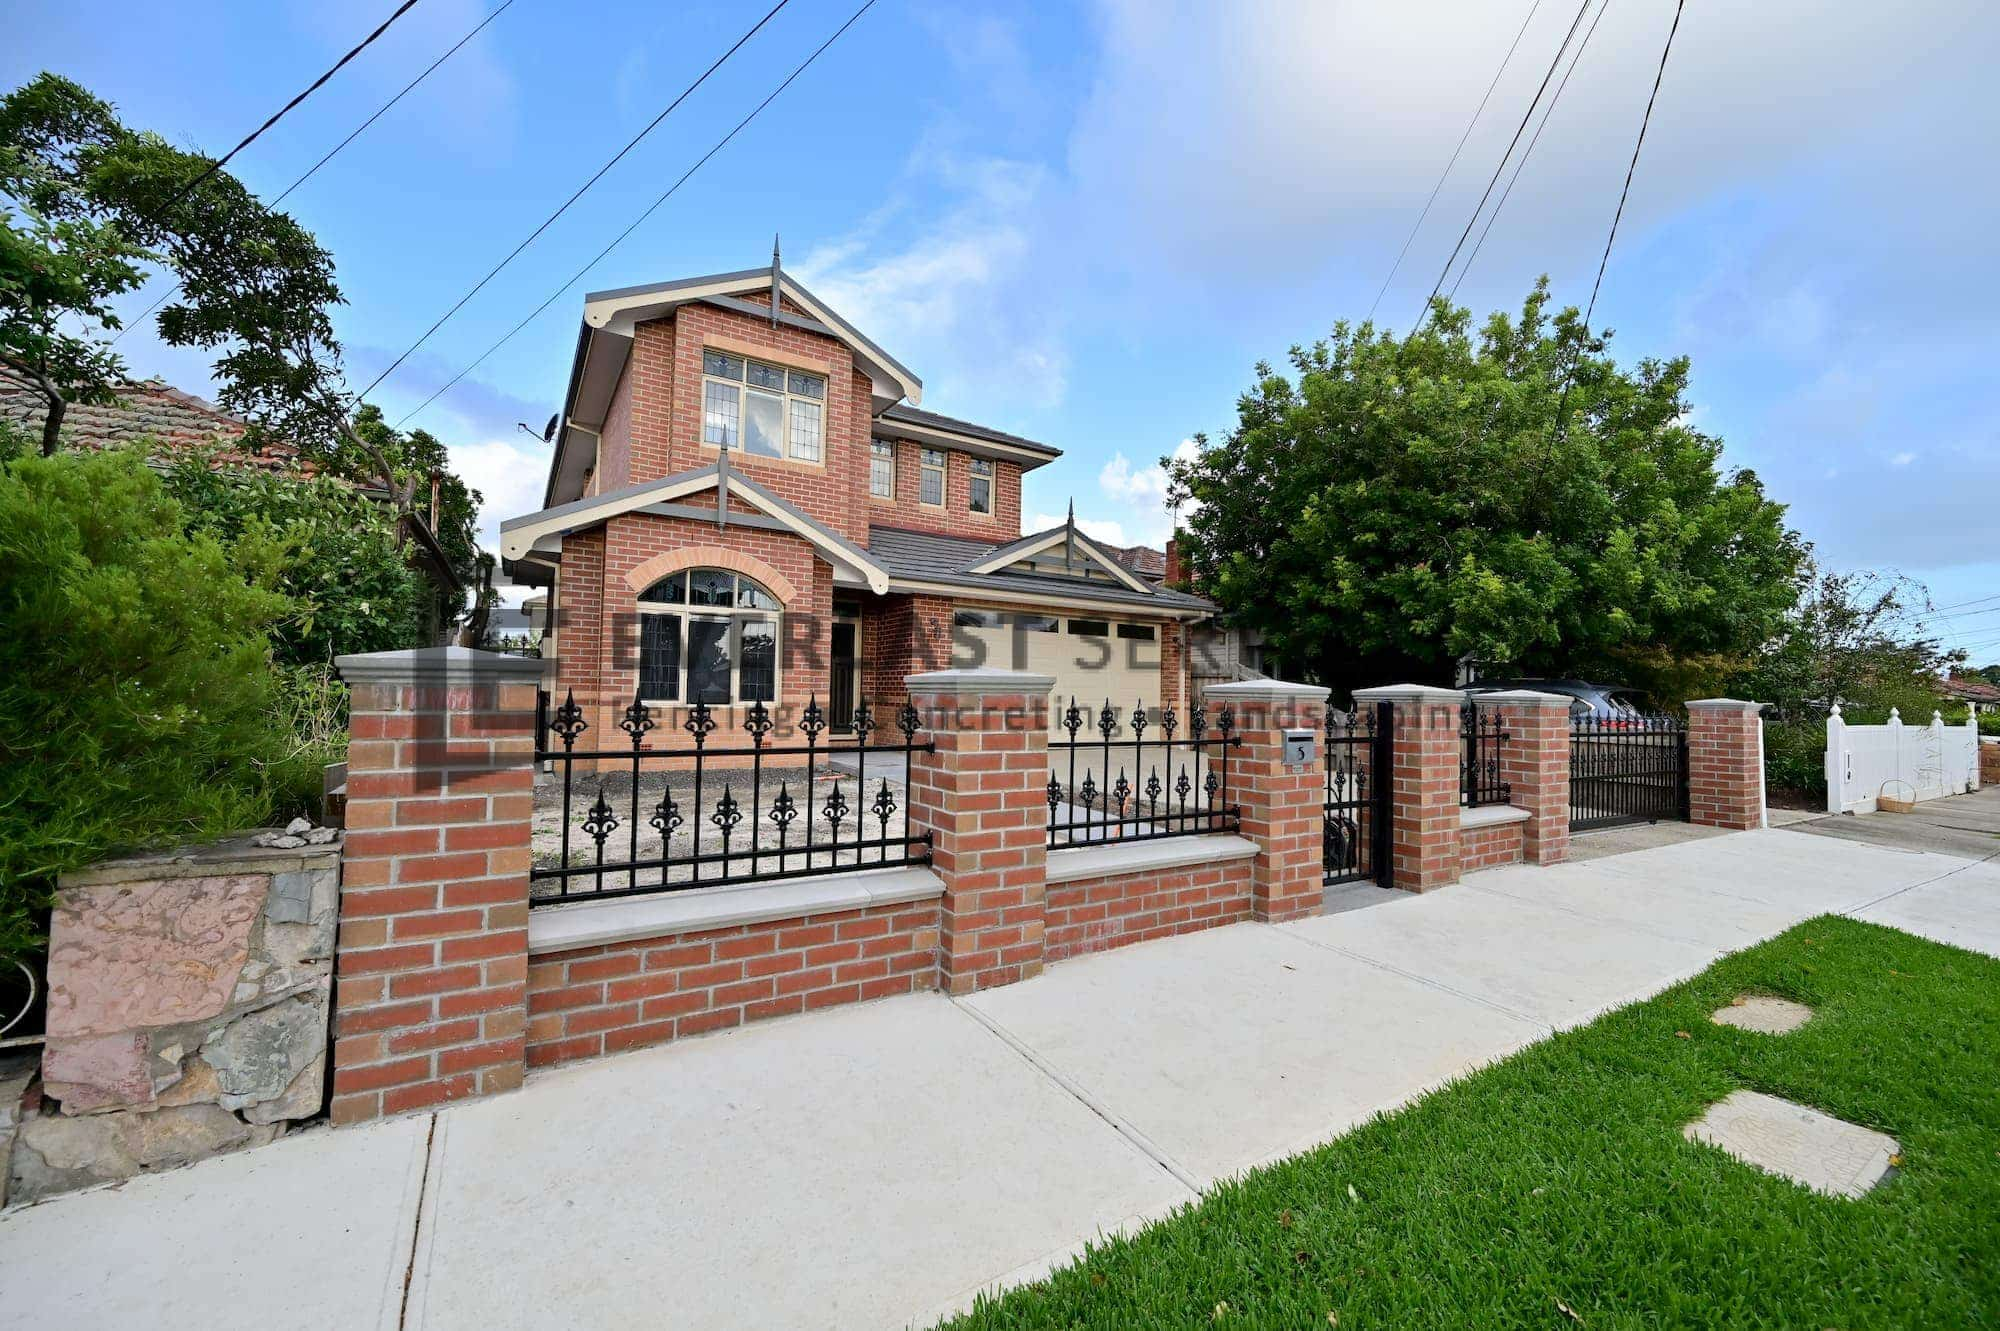 SF188 - Yarraville - Steel Gate surrounding property